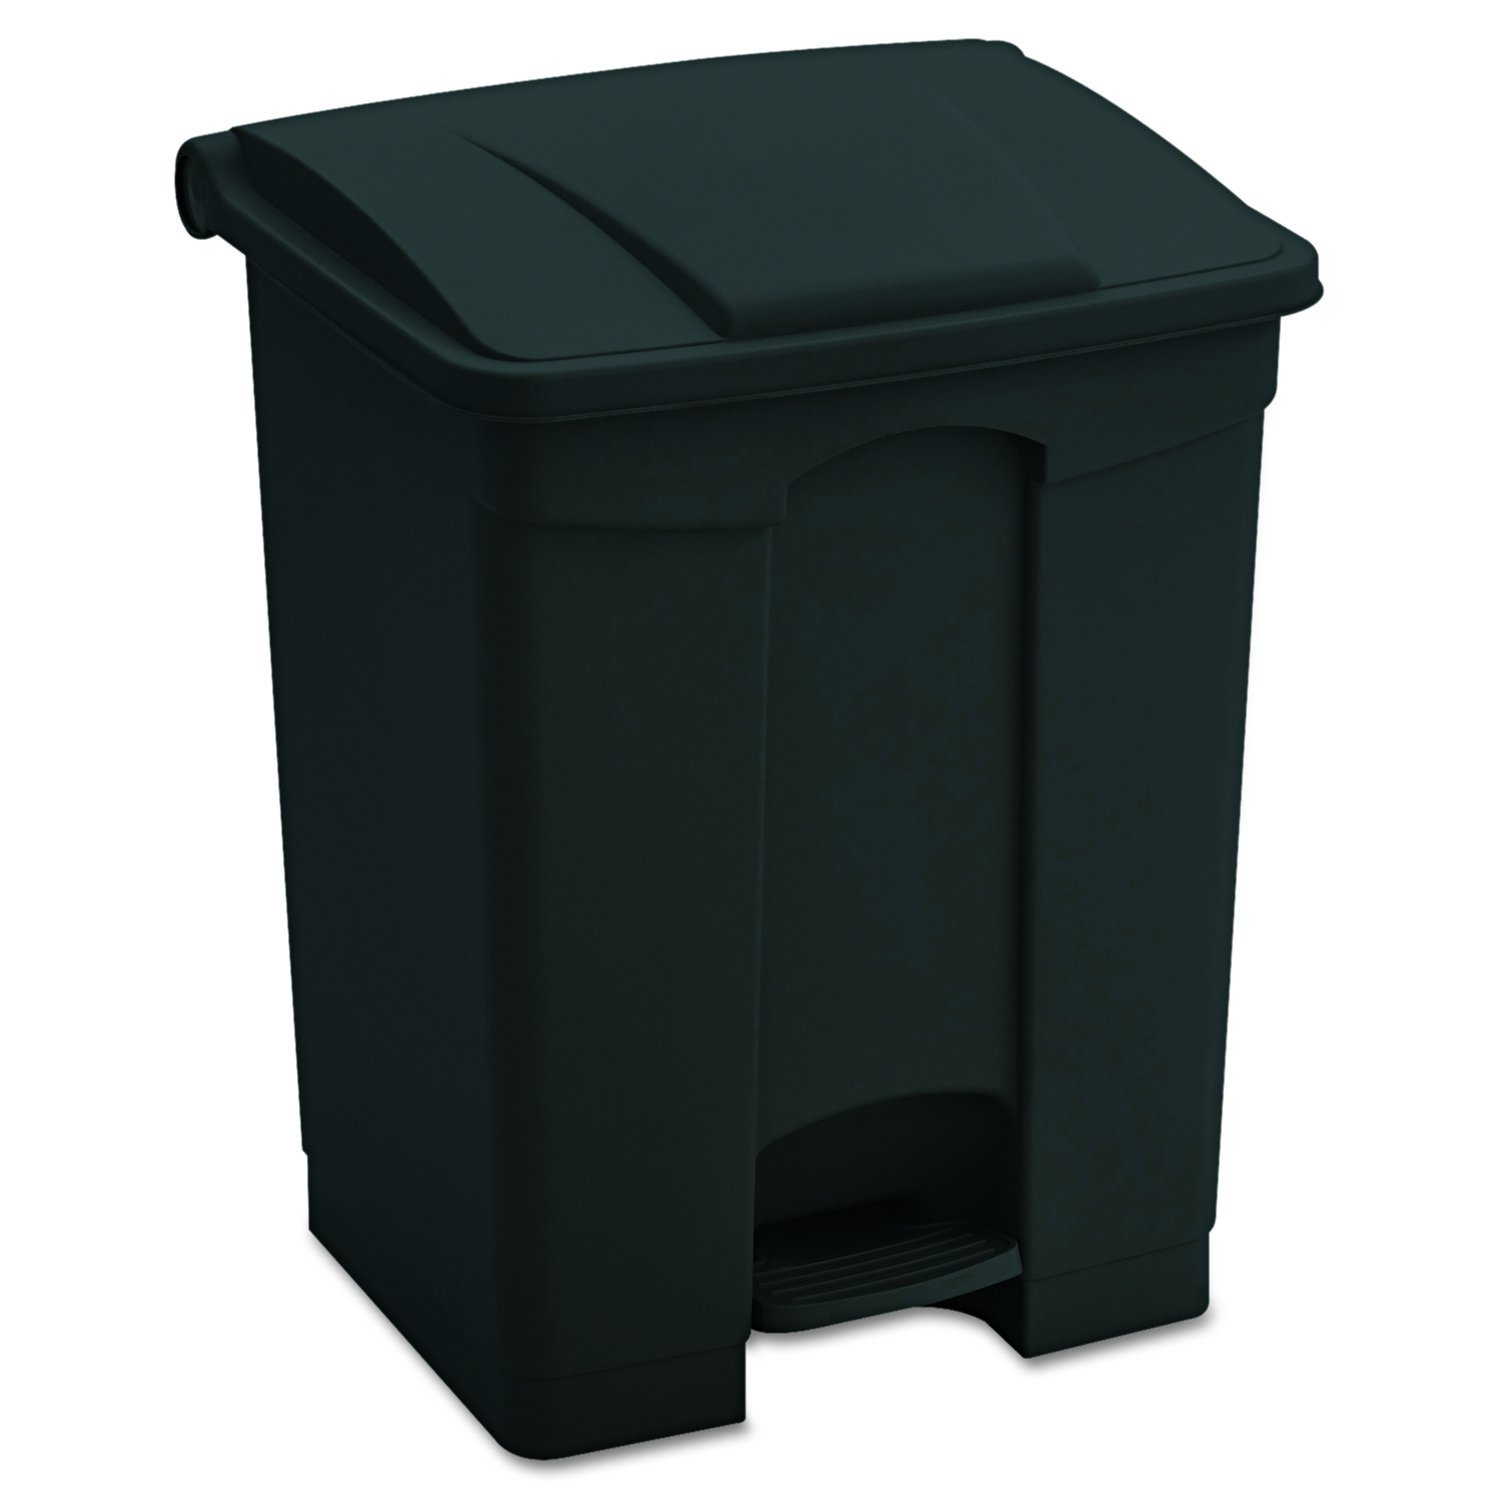 Safco Products 9923BL Plastic Step-On Trash Can, 23-Gallon, Black